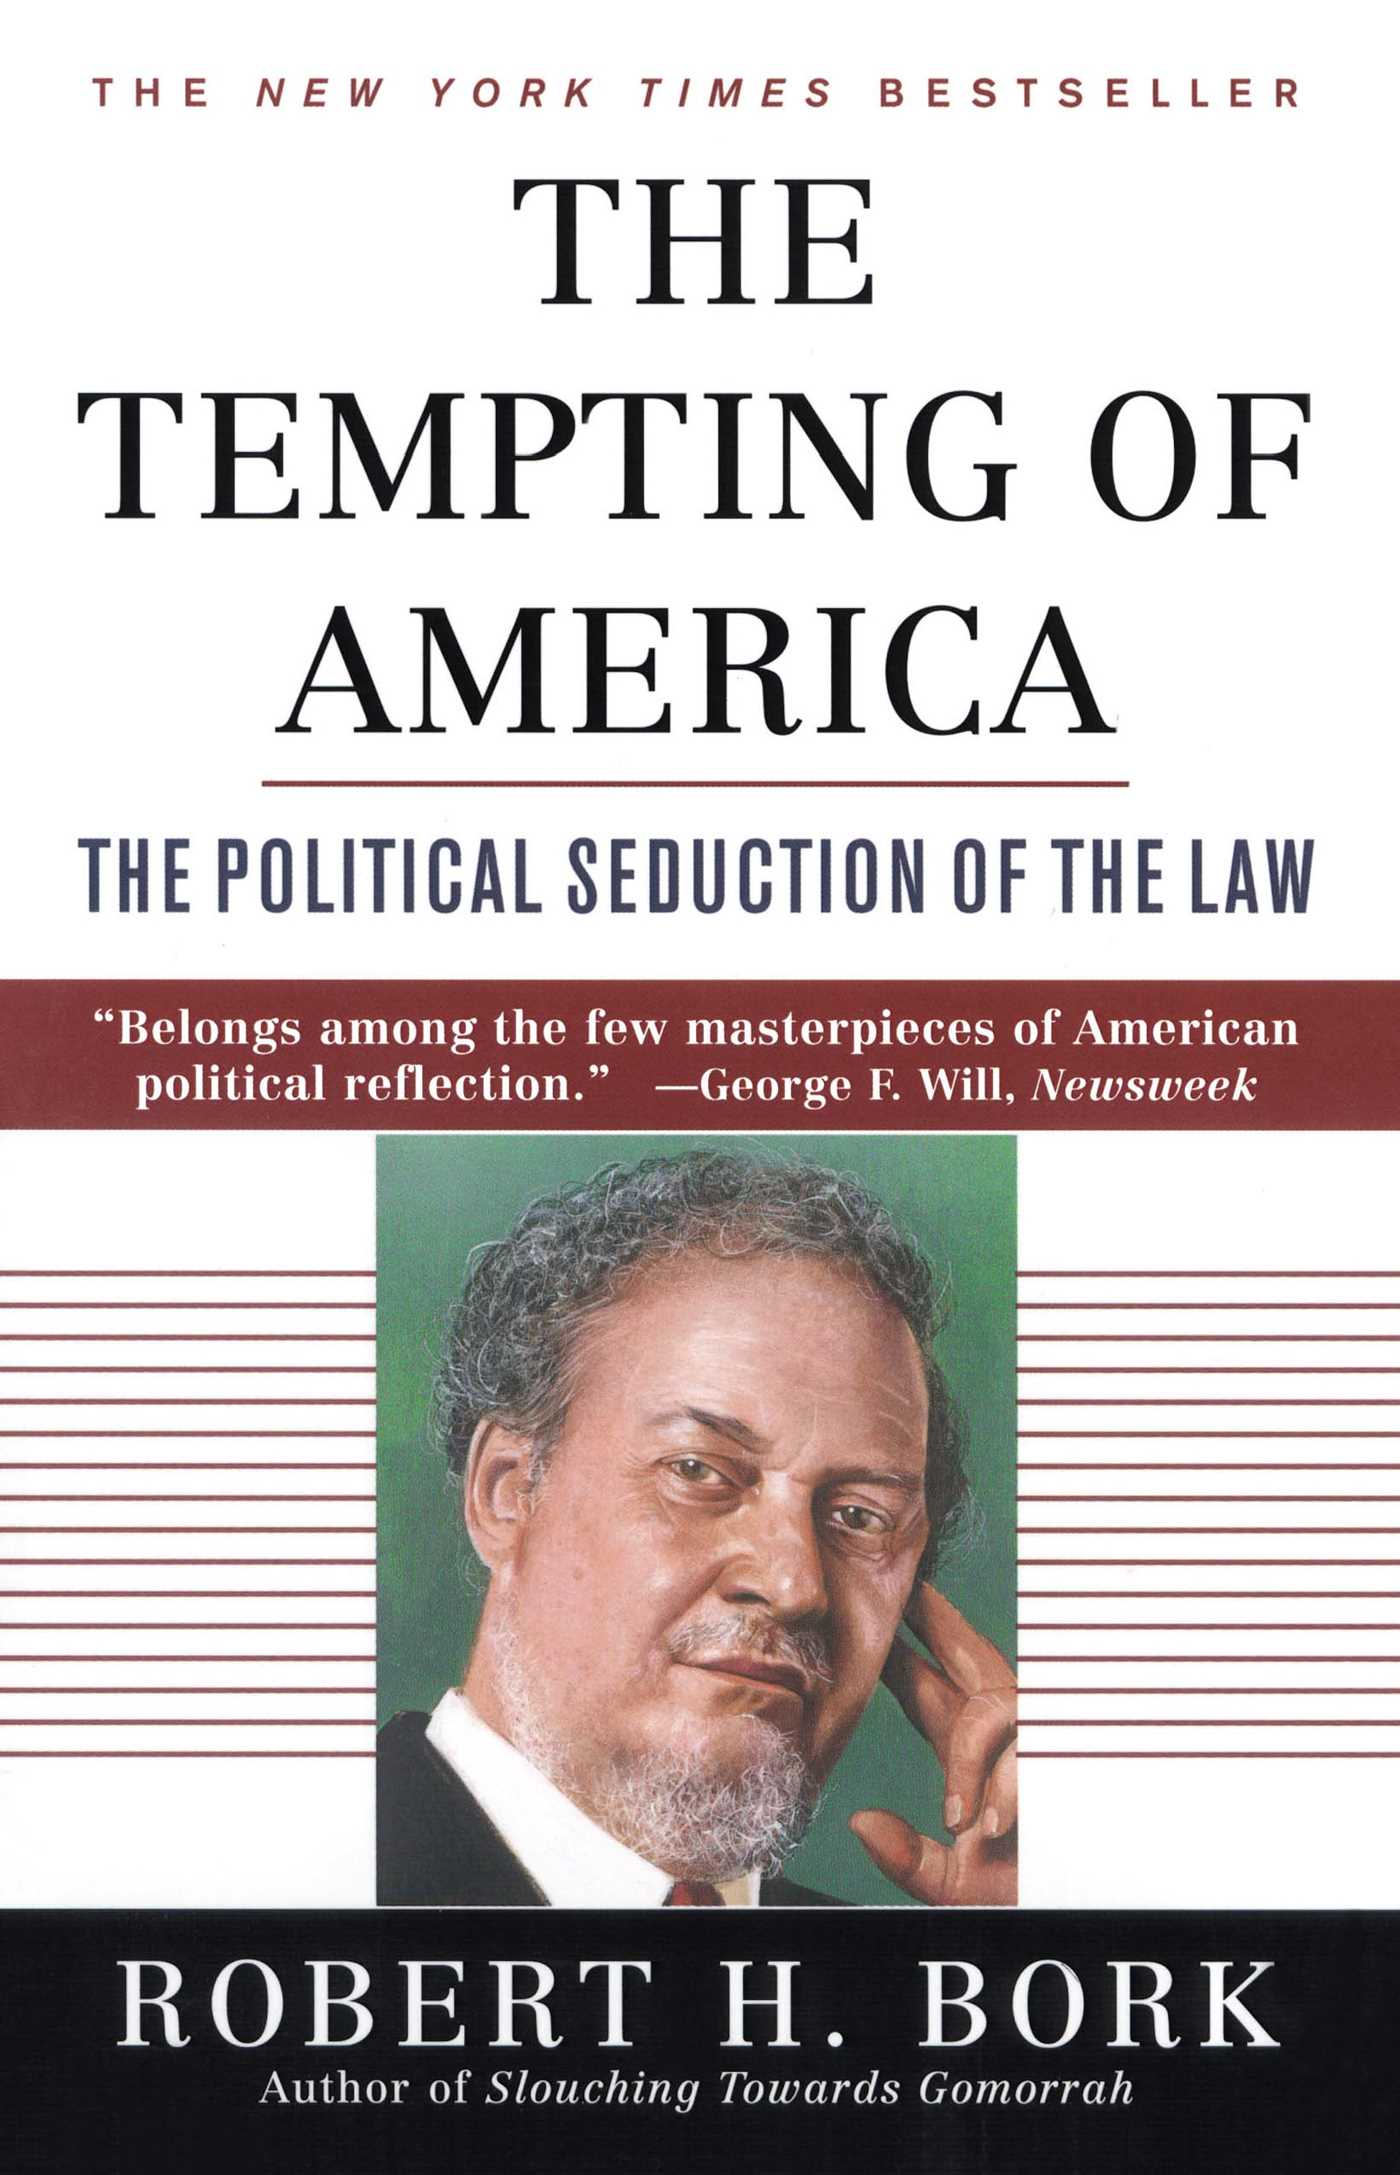 The tempting of america 9781439188866 hr